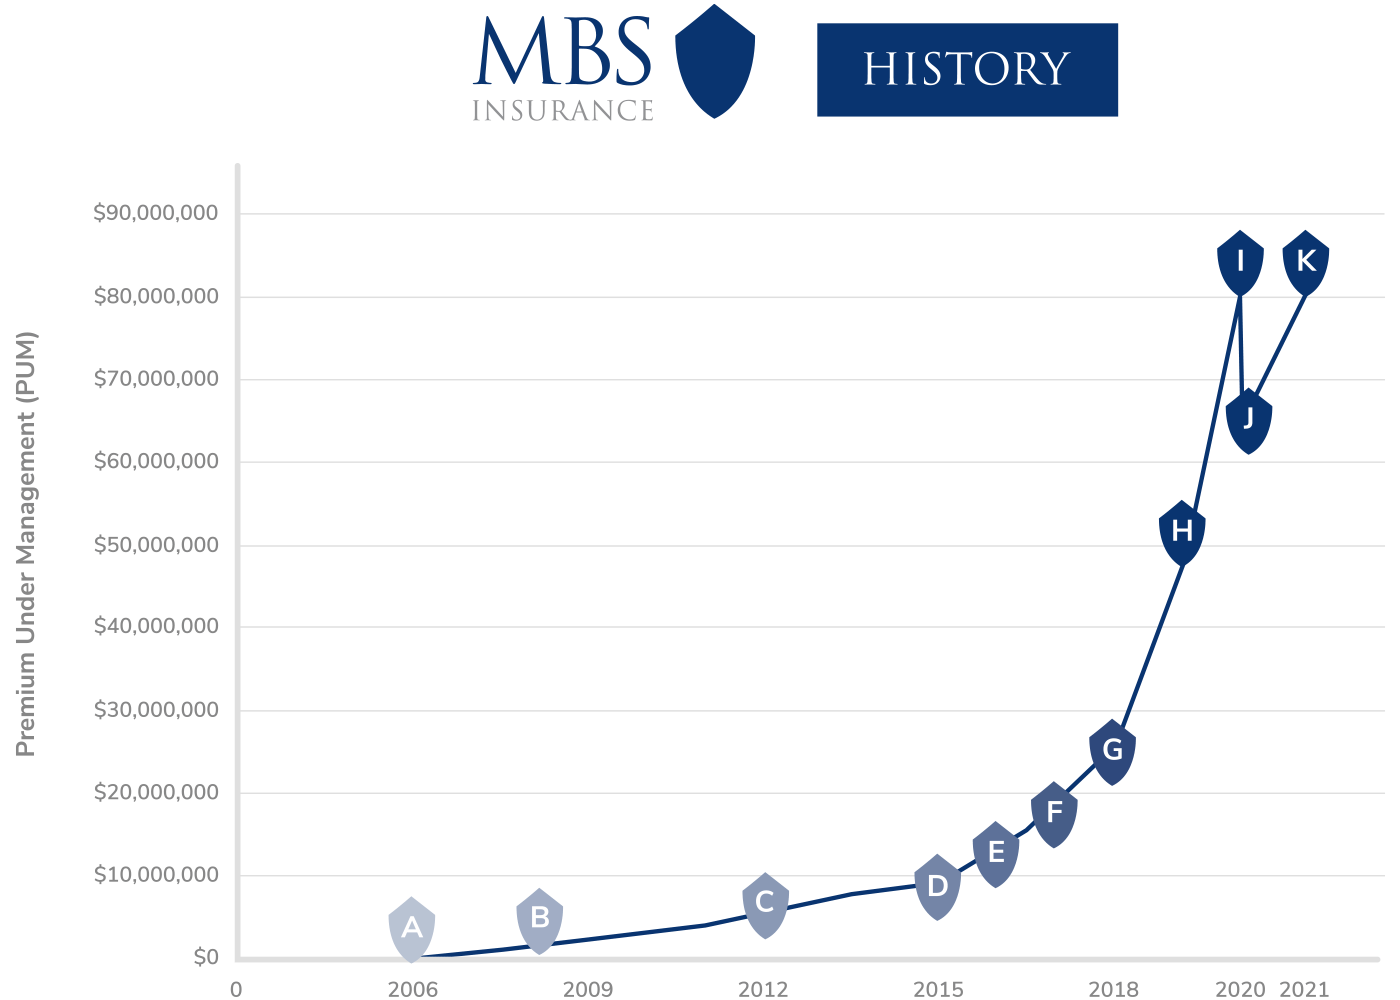 MBS Insurance Growth History Graph 2021